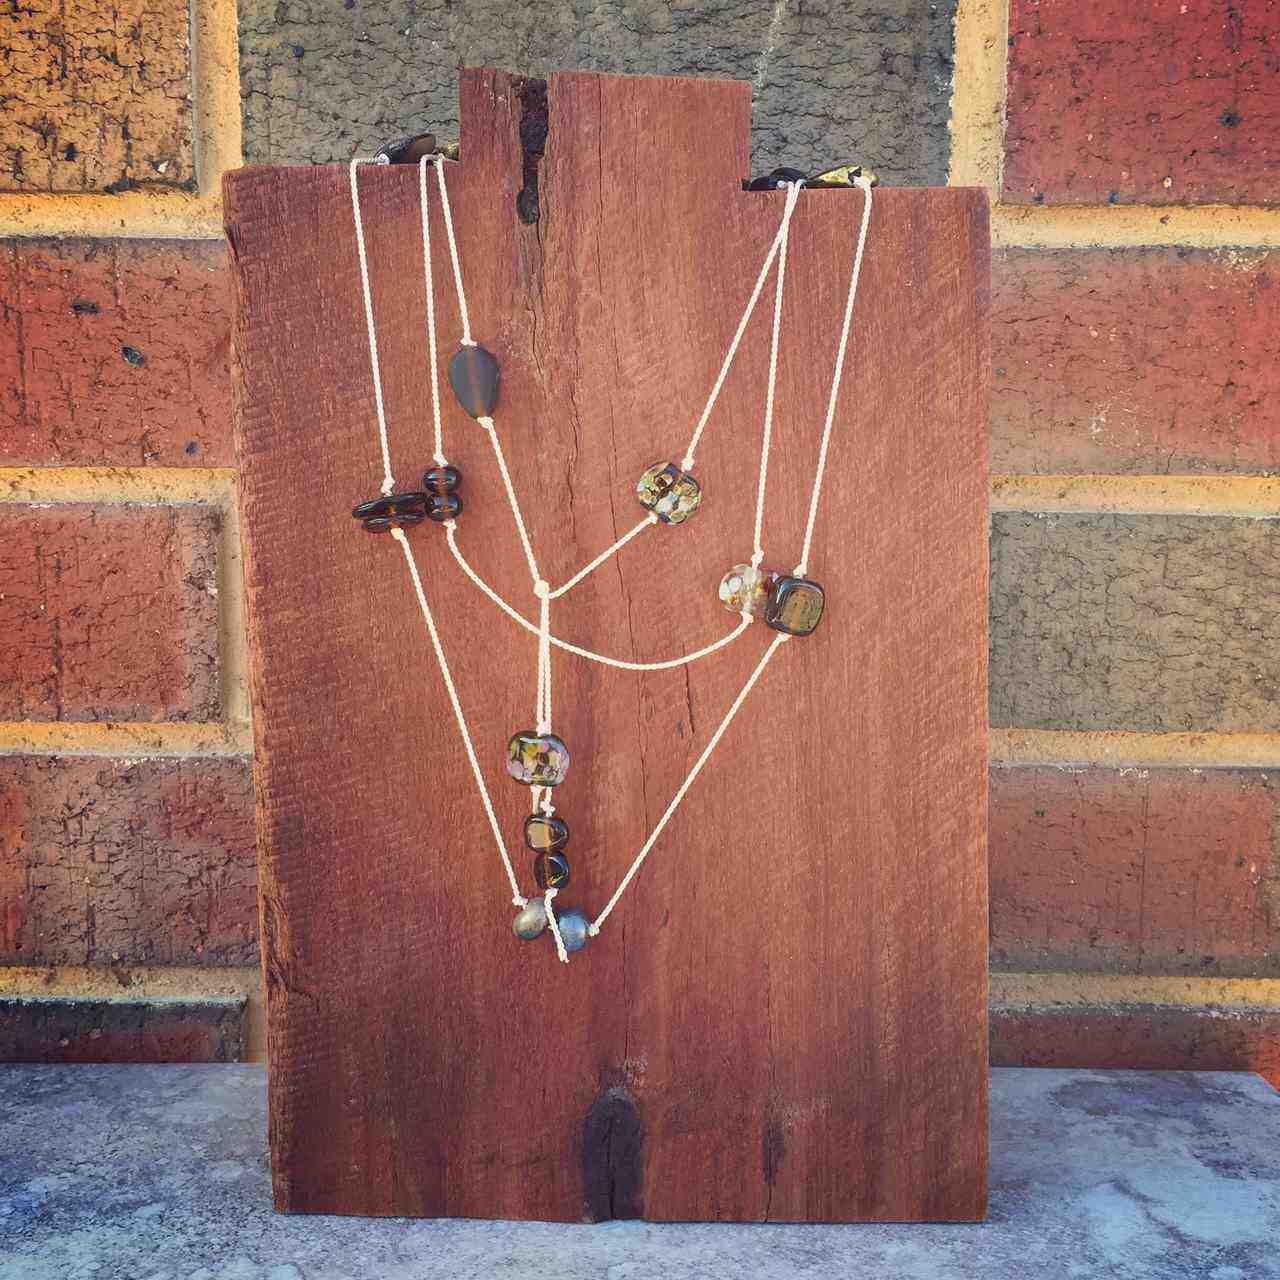 Lariat style necklace made with handmade recycled glass beads by Julie Frahm